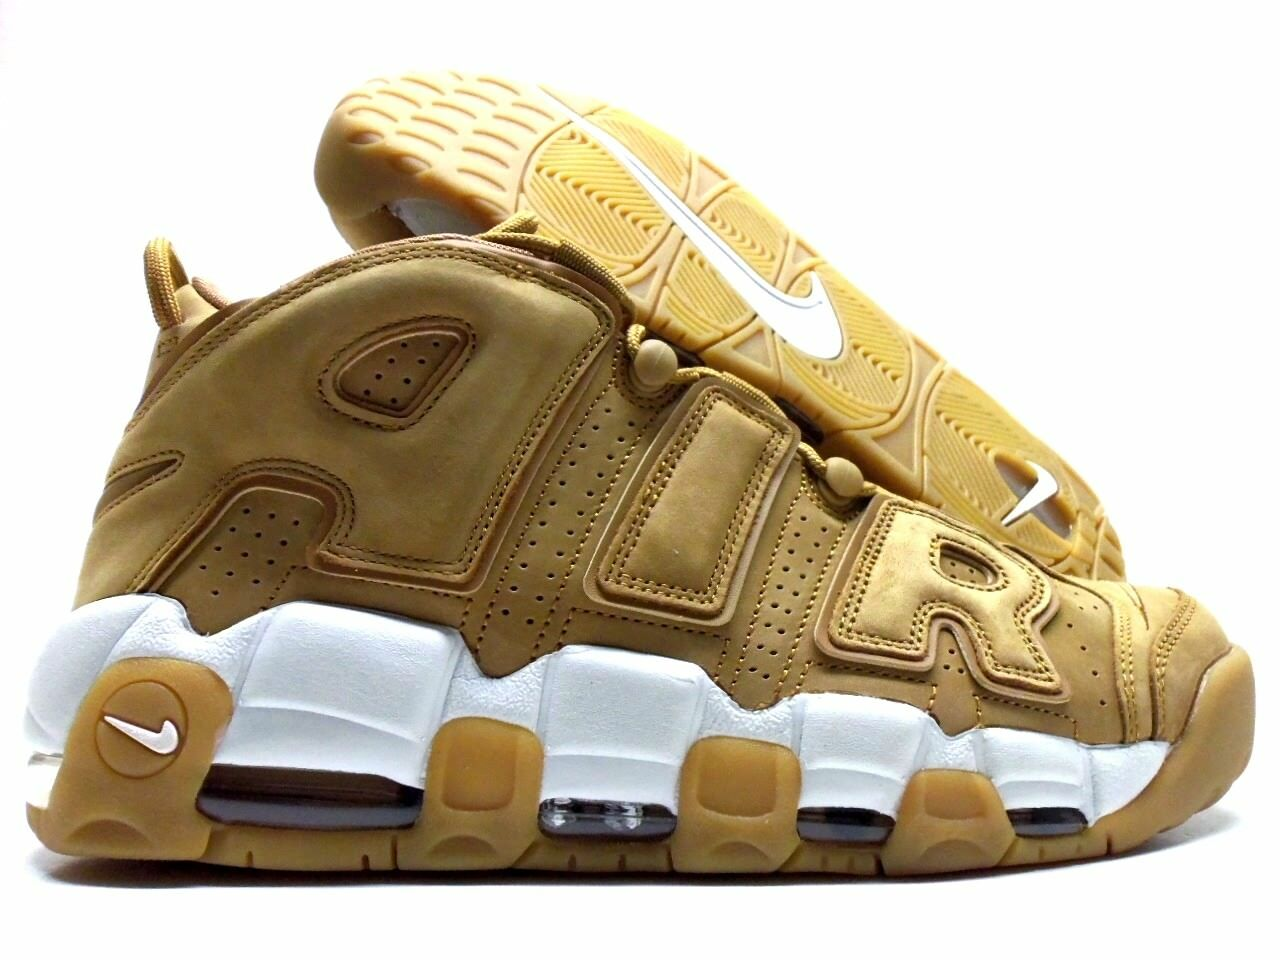 NIKE AIR MORE UPTEMPO '96 PRM WHEAT FLAX/FLAX-PHANTOM SIZE MEN'S 9 Price reduction The most popular shoes for men and women